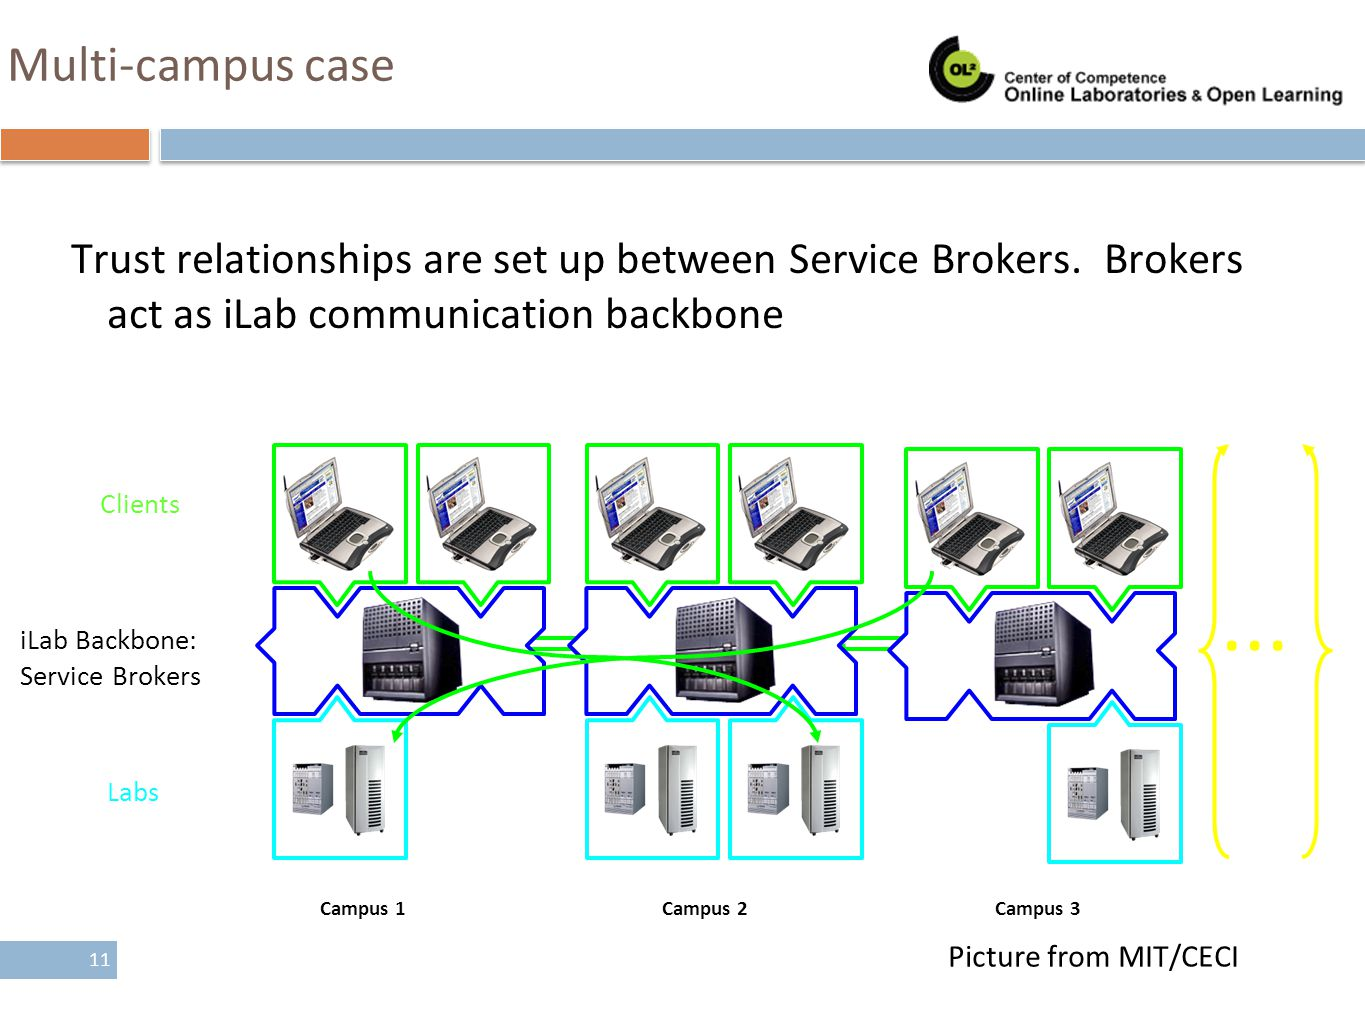 Multi-campus case Trust relationships are set up between Service Brokers. Brokers act as iLab communication backbone.